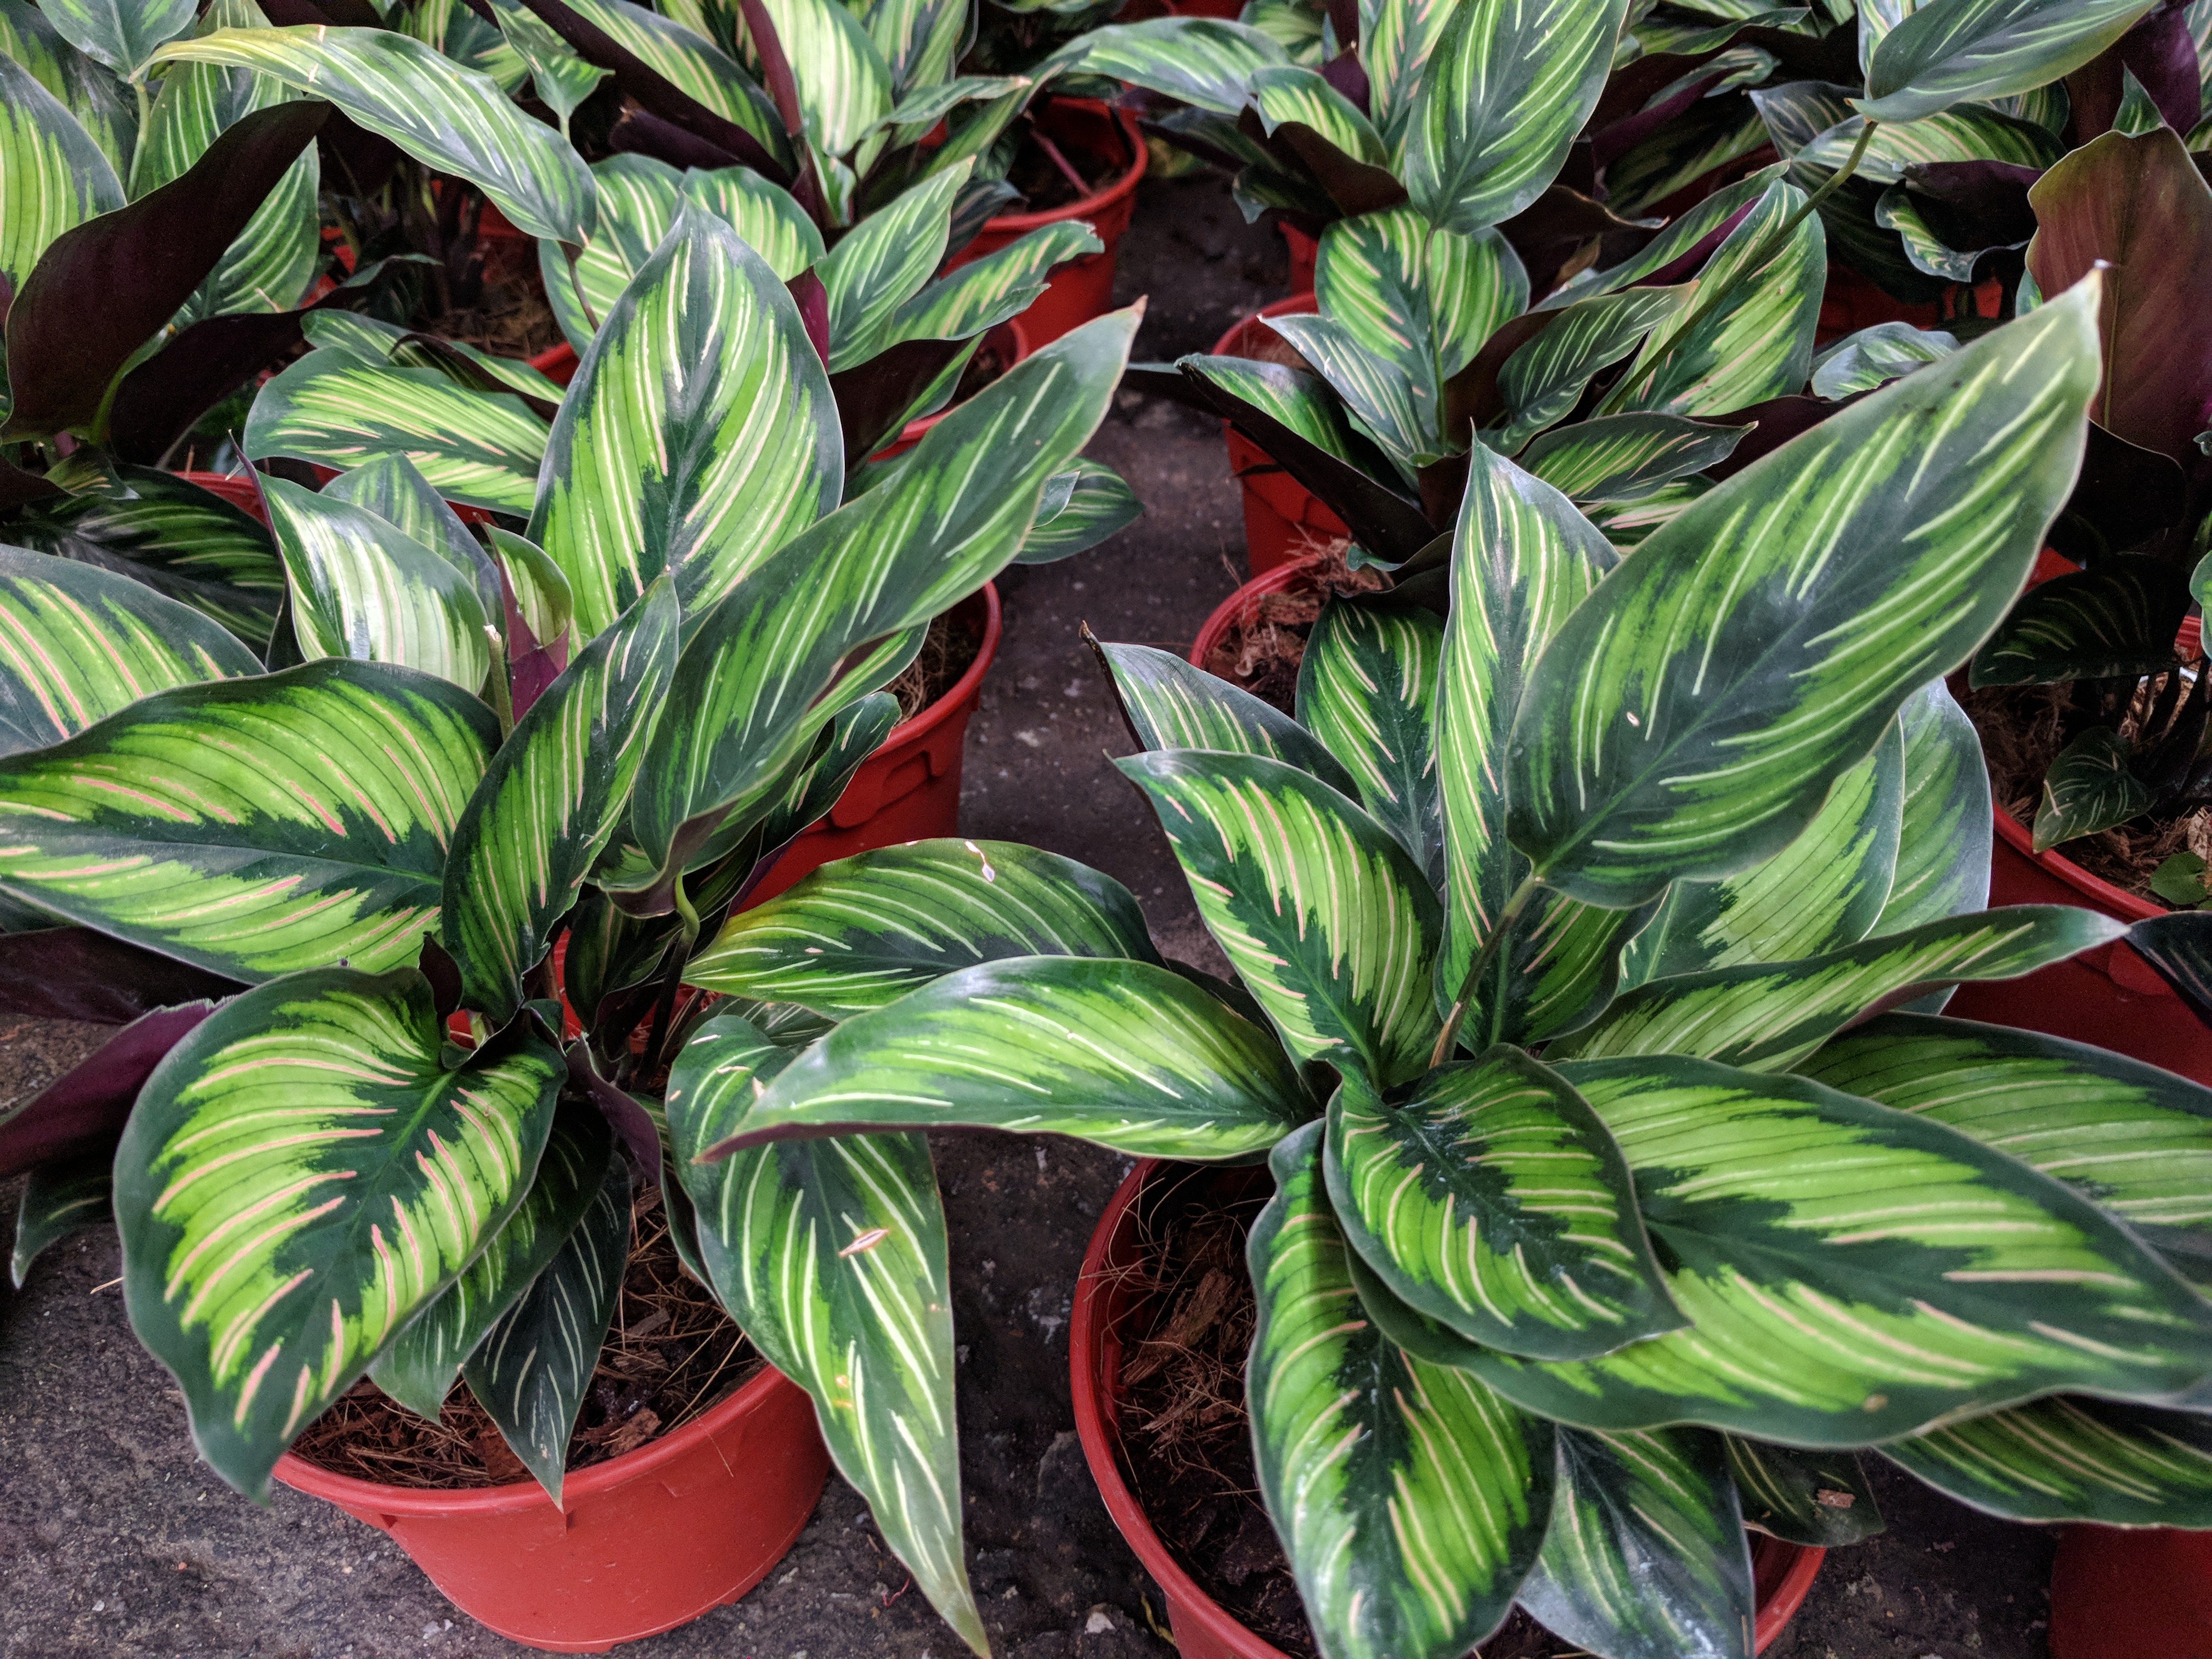 How to Care for Calathea | Apartment Therapy Poted House Houseplants on